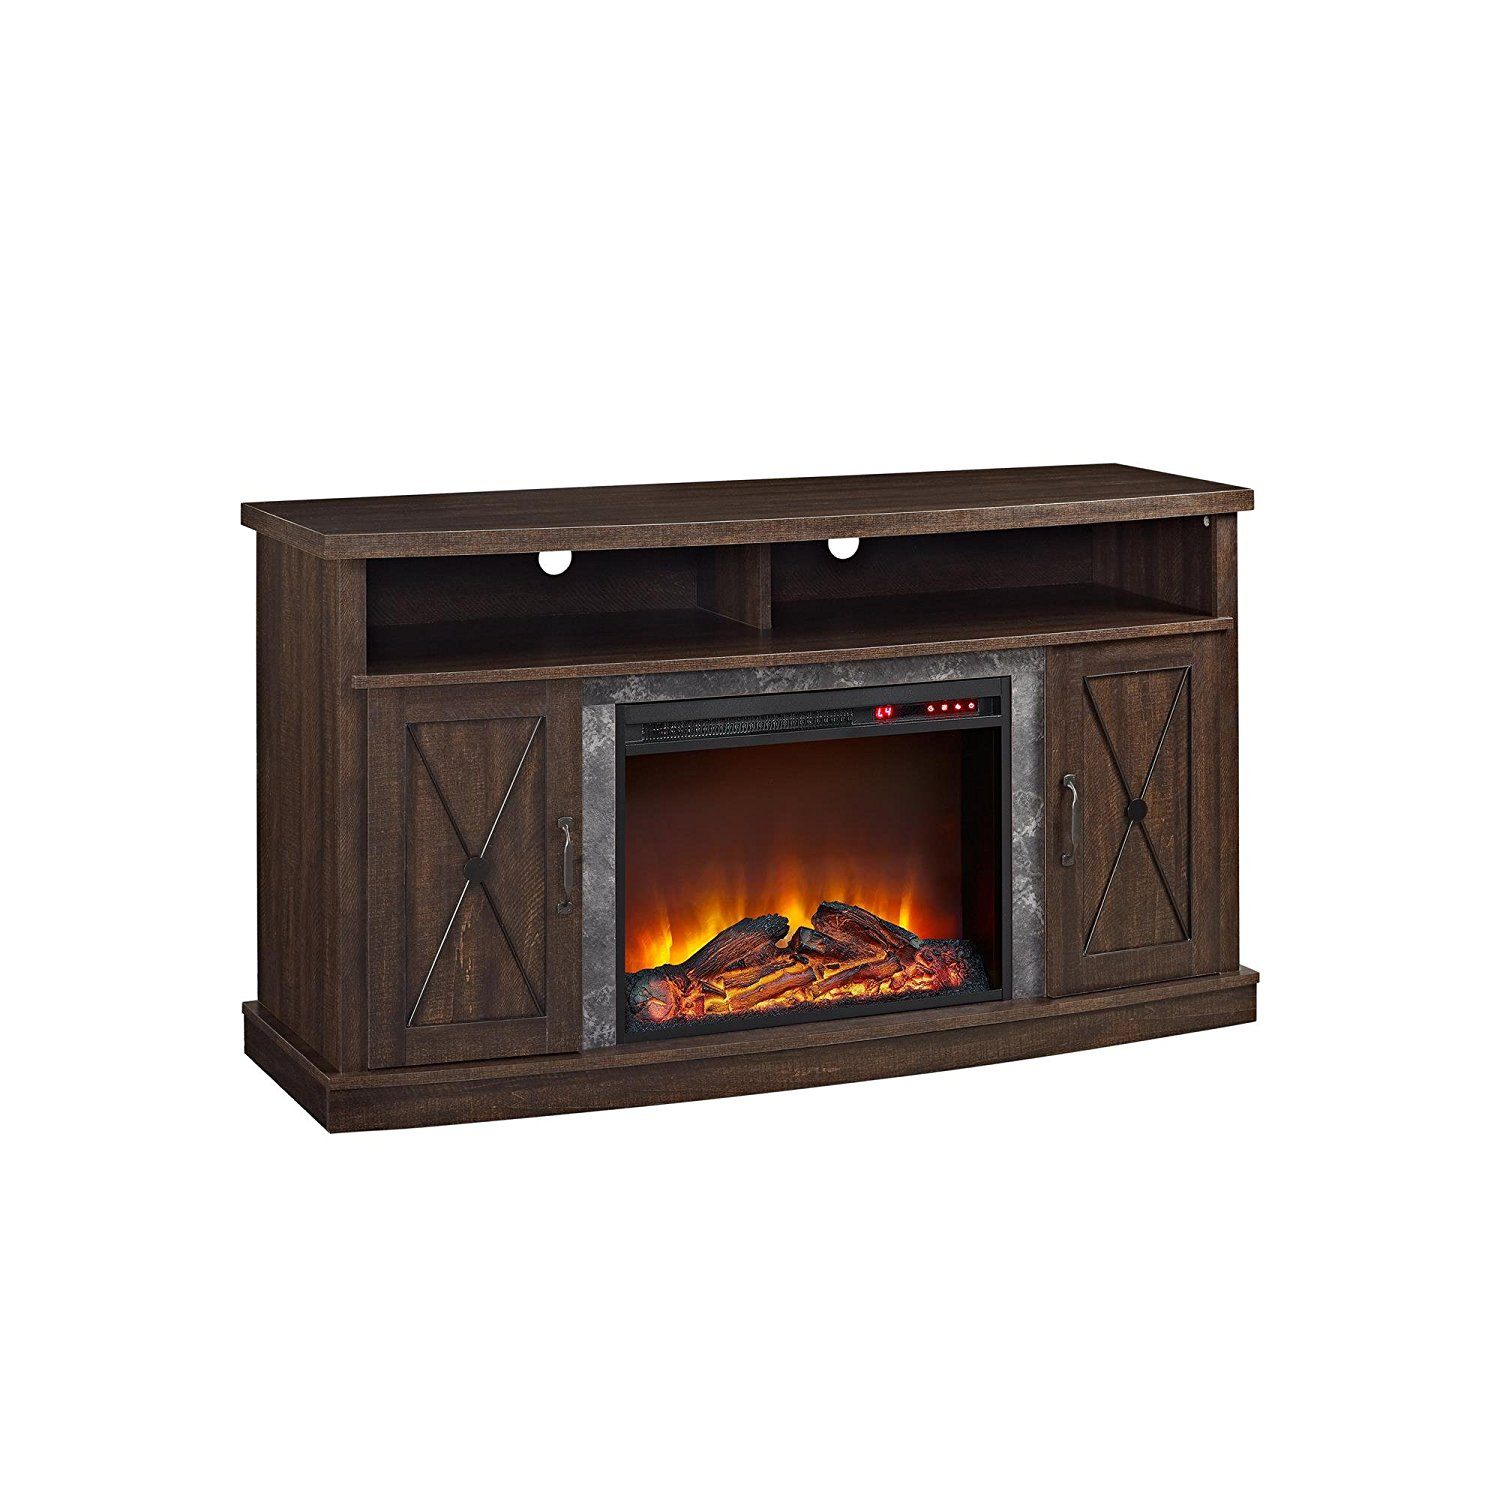 Cheap Stand Alone Fireplace Find Stand Alone Fireplace Deals On